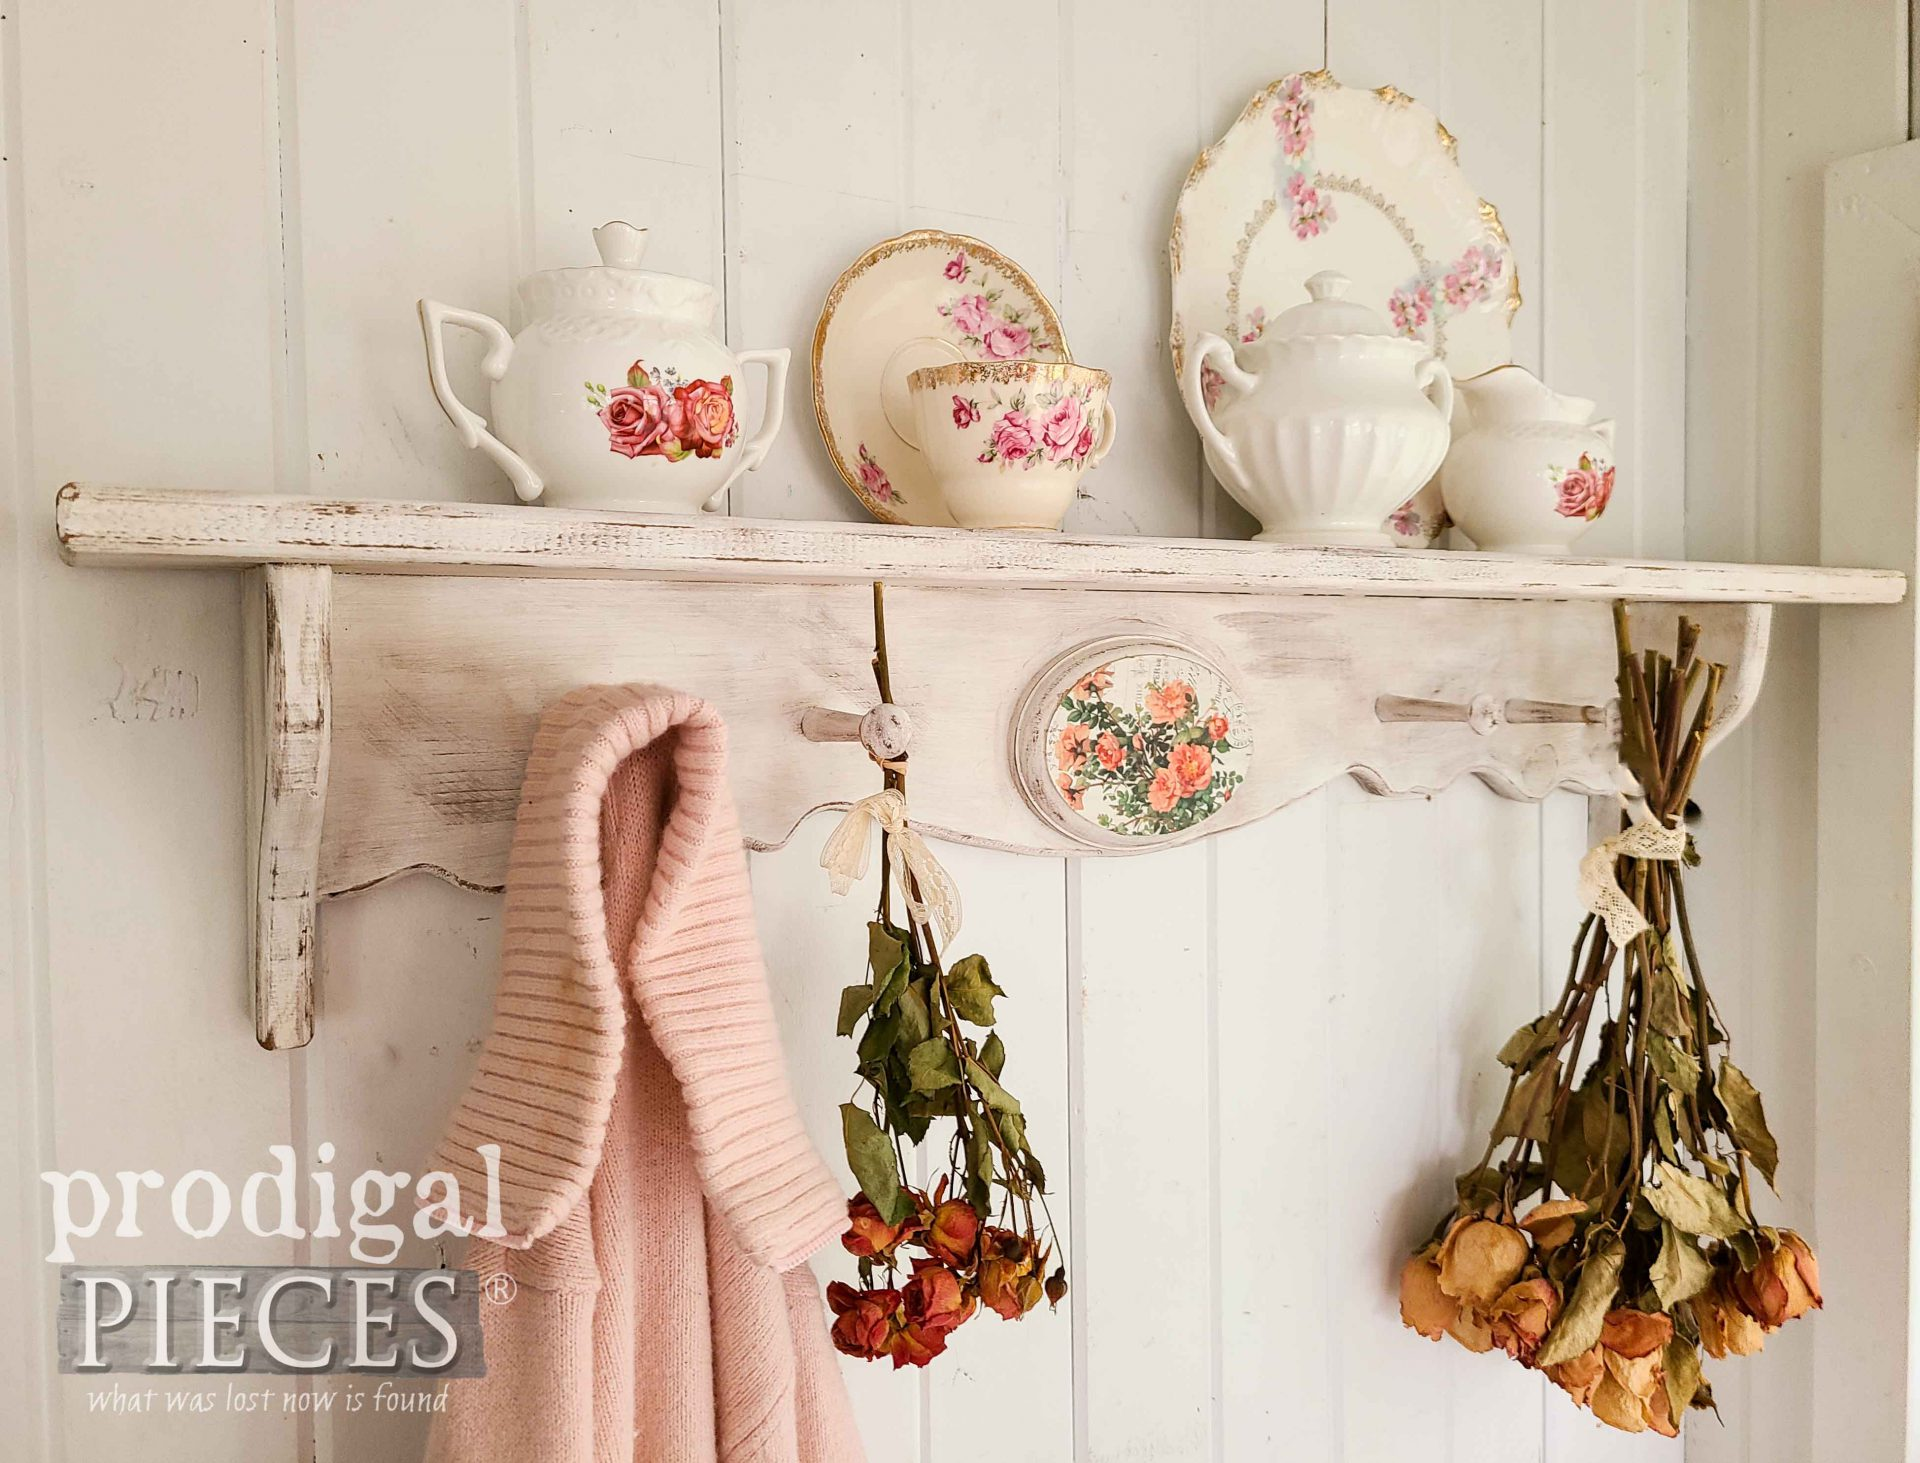 Vintage Rose Vignette for Thrifty Decor Makeovers by Larissa of Prodigal Pieces | prodigalpieces.com #prodigalpieces #shabbychic #vintage #rose